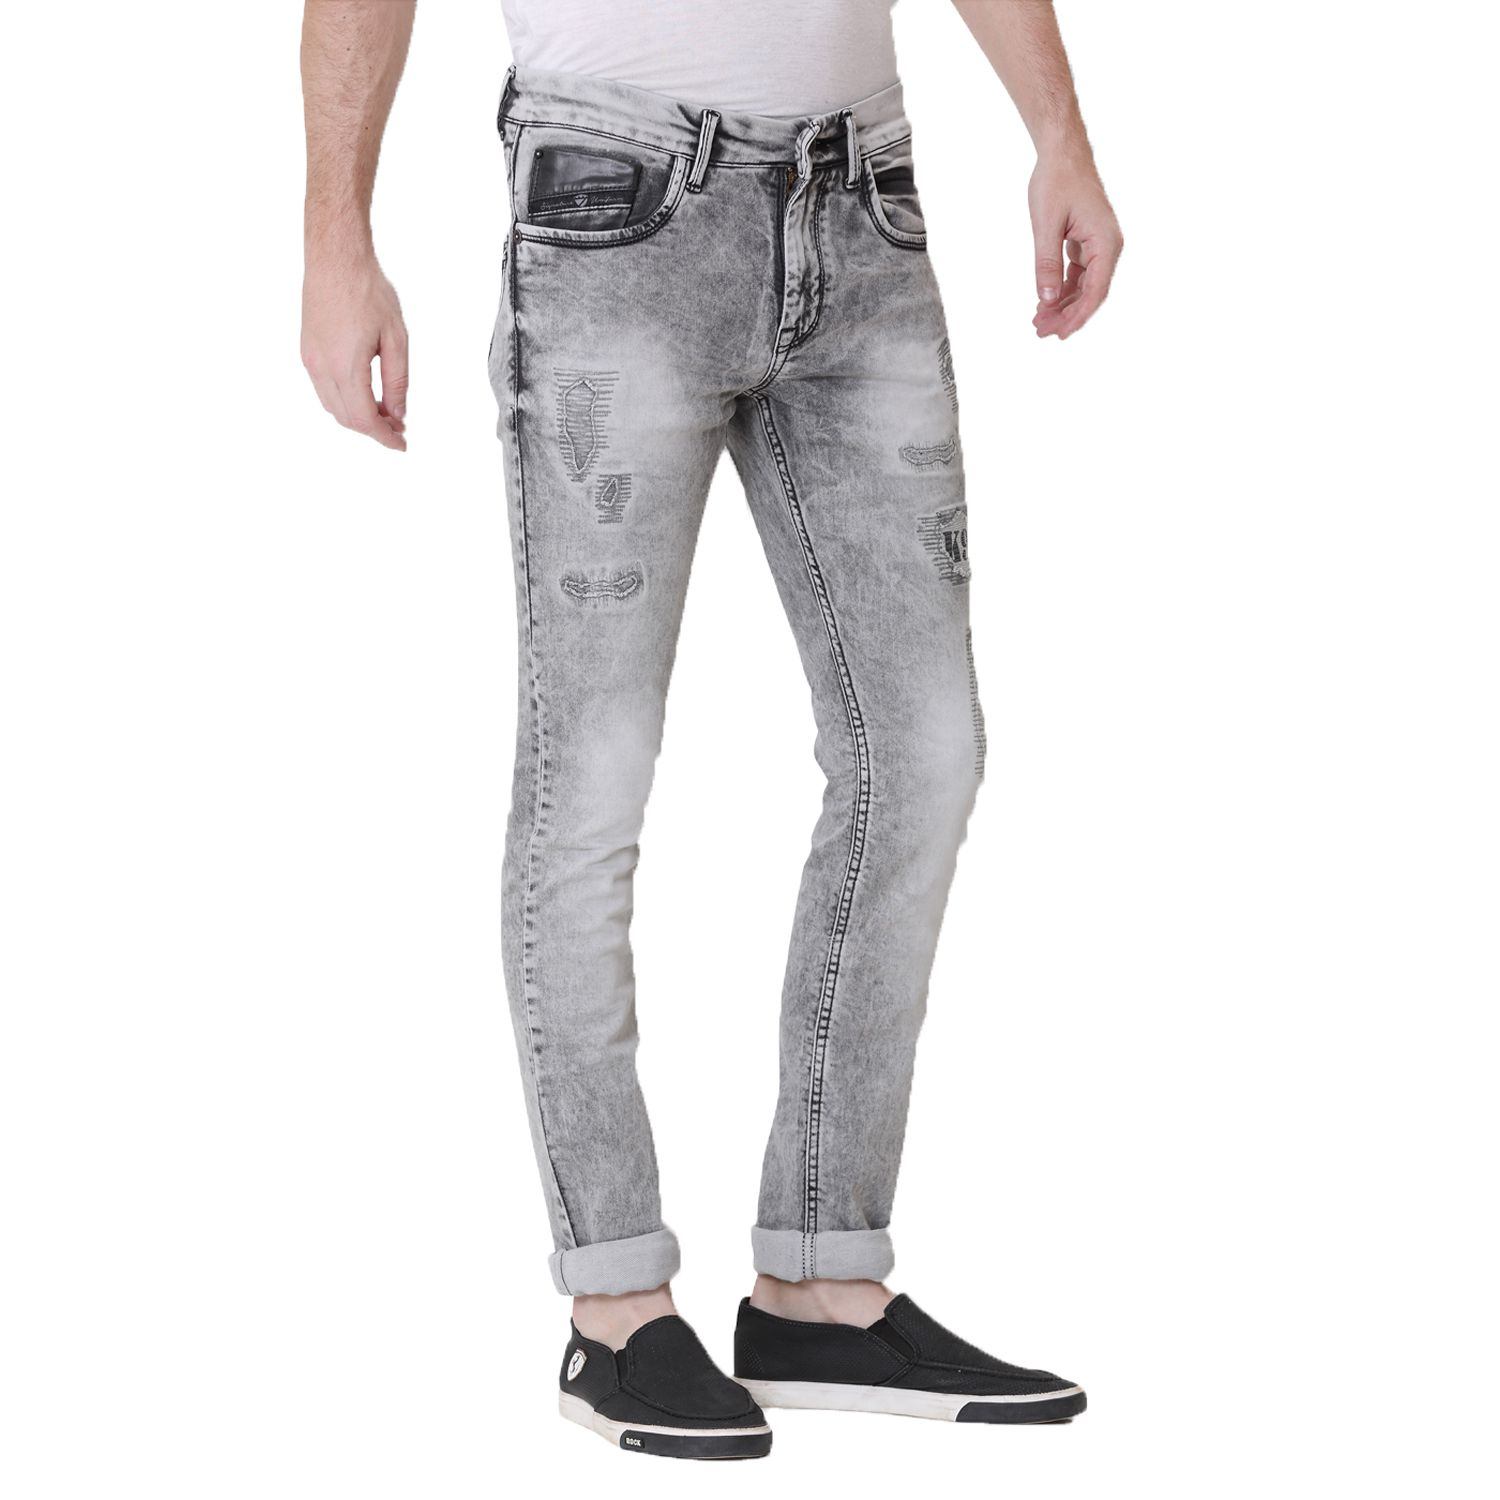 KOZZAK Grey Slim Jeans